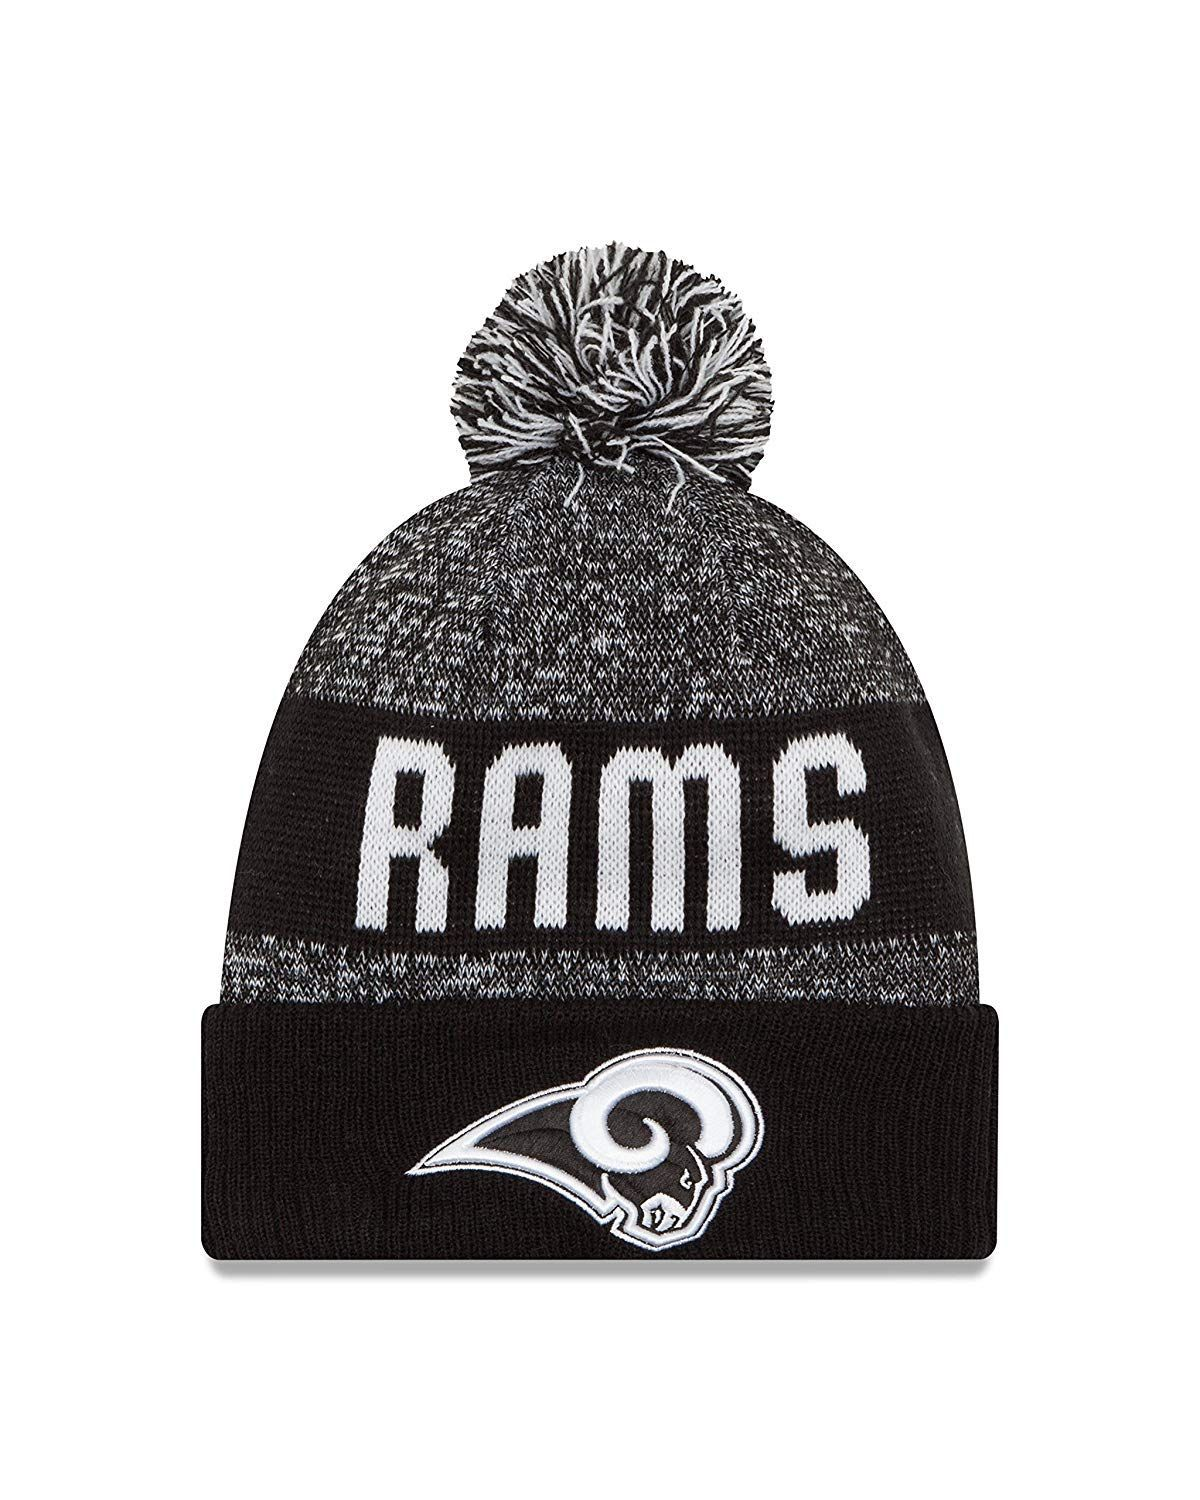 53b7af2e423c7 Los Angeles Rams Knit Beanie with Pom Hat